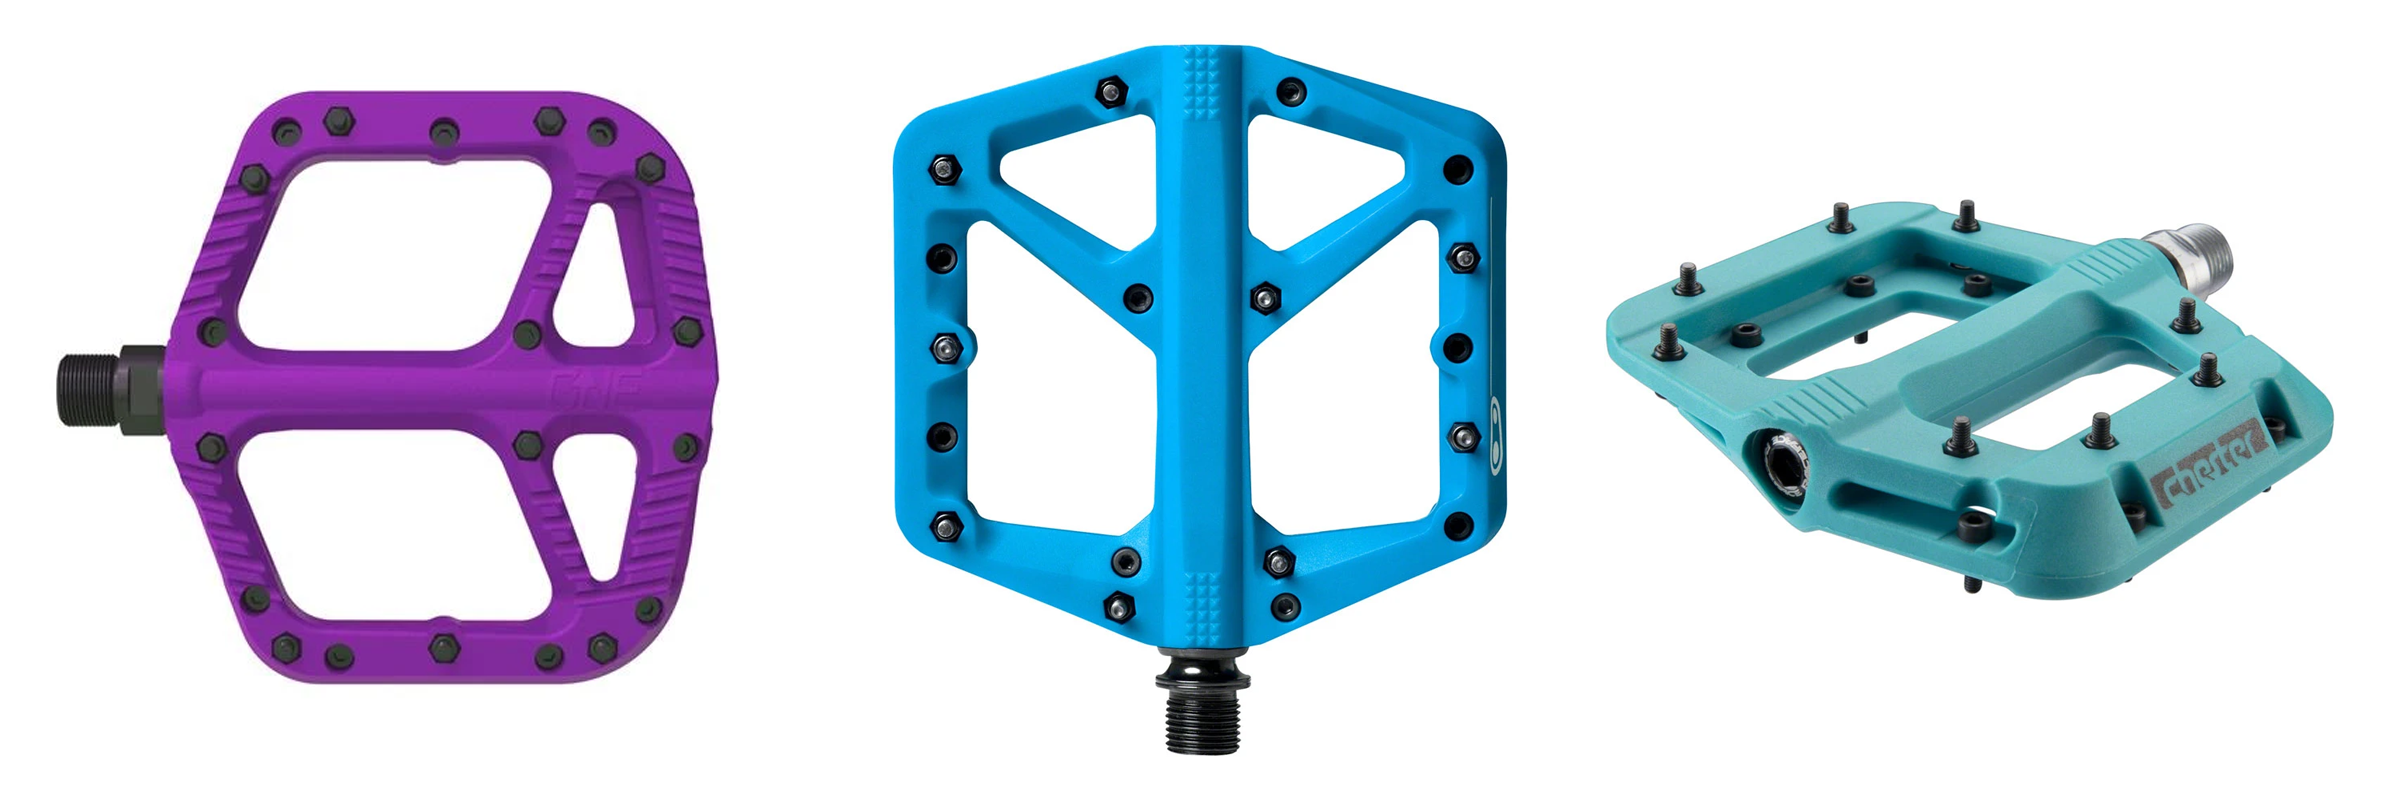 TOP SELLING MTB PEDALS